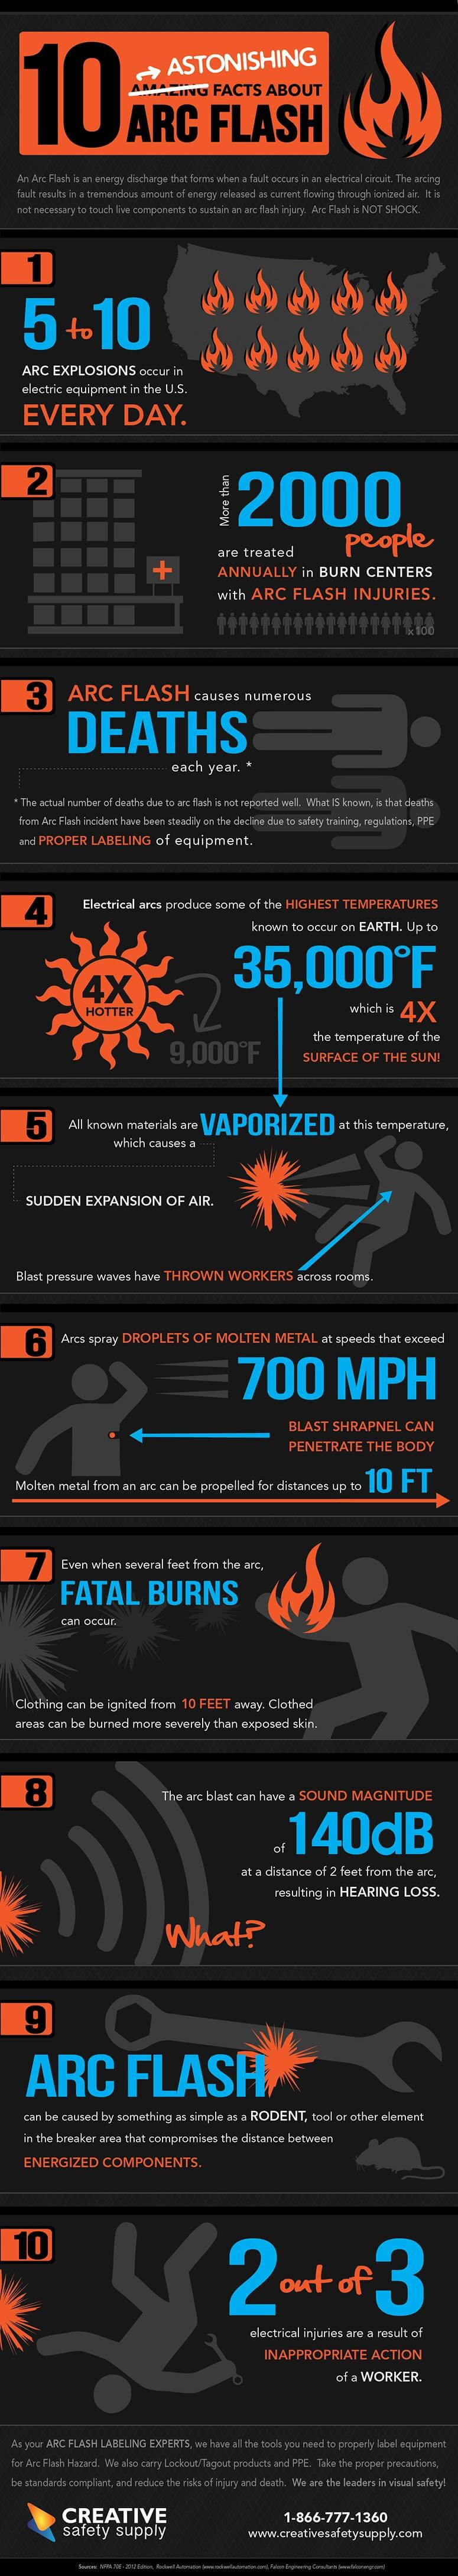 infographic 10 astonishing facts about arc flash. Black Bedroom Furniture Sets. Home Design Ideas